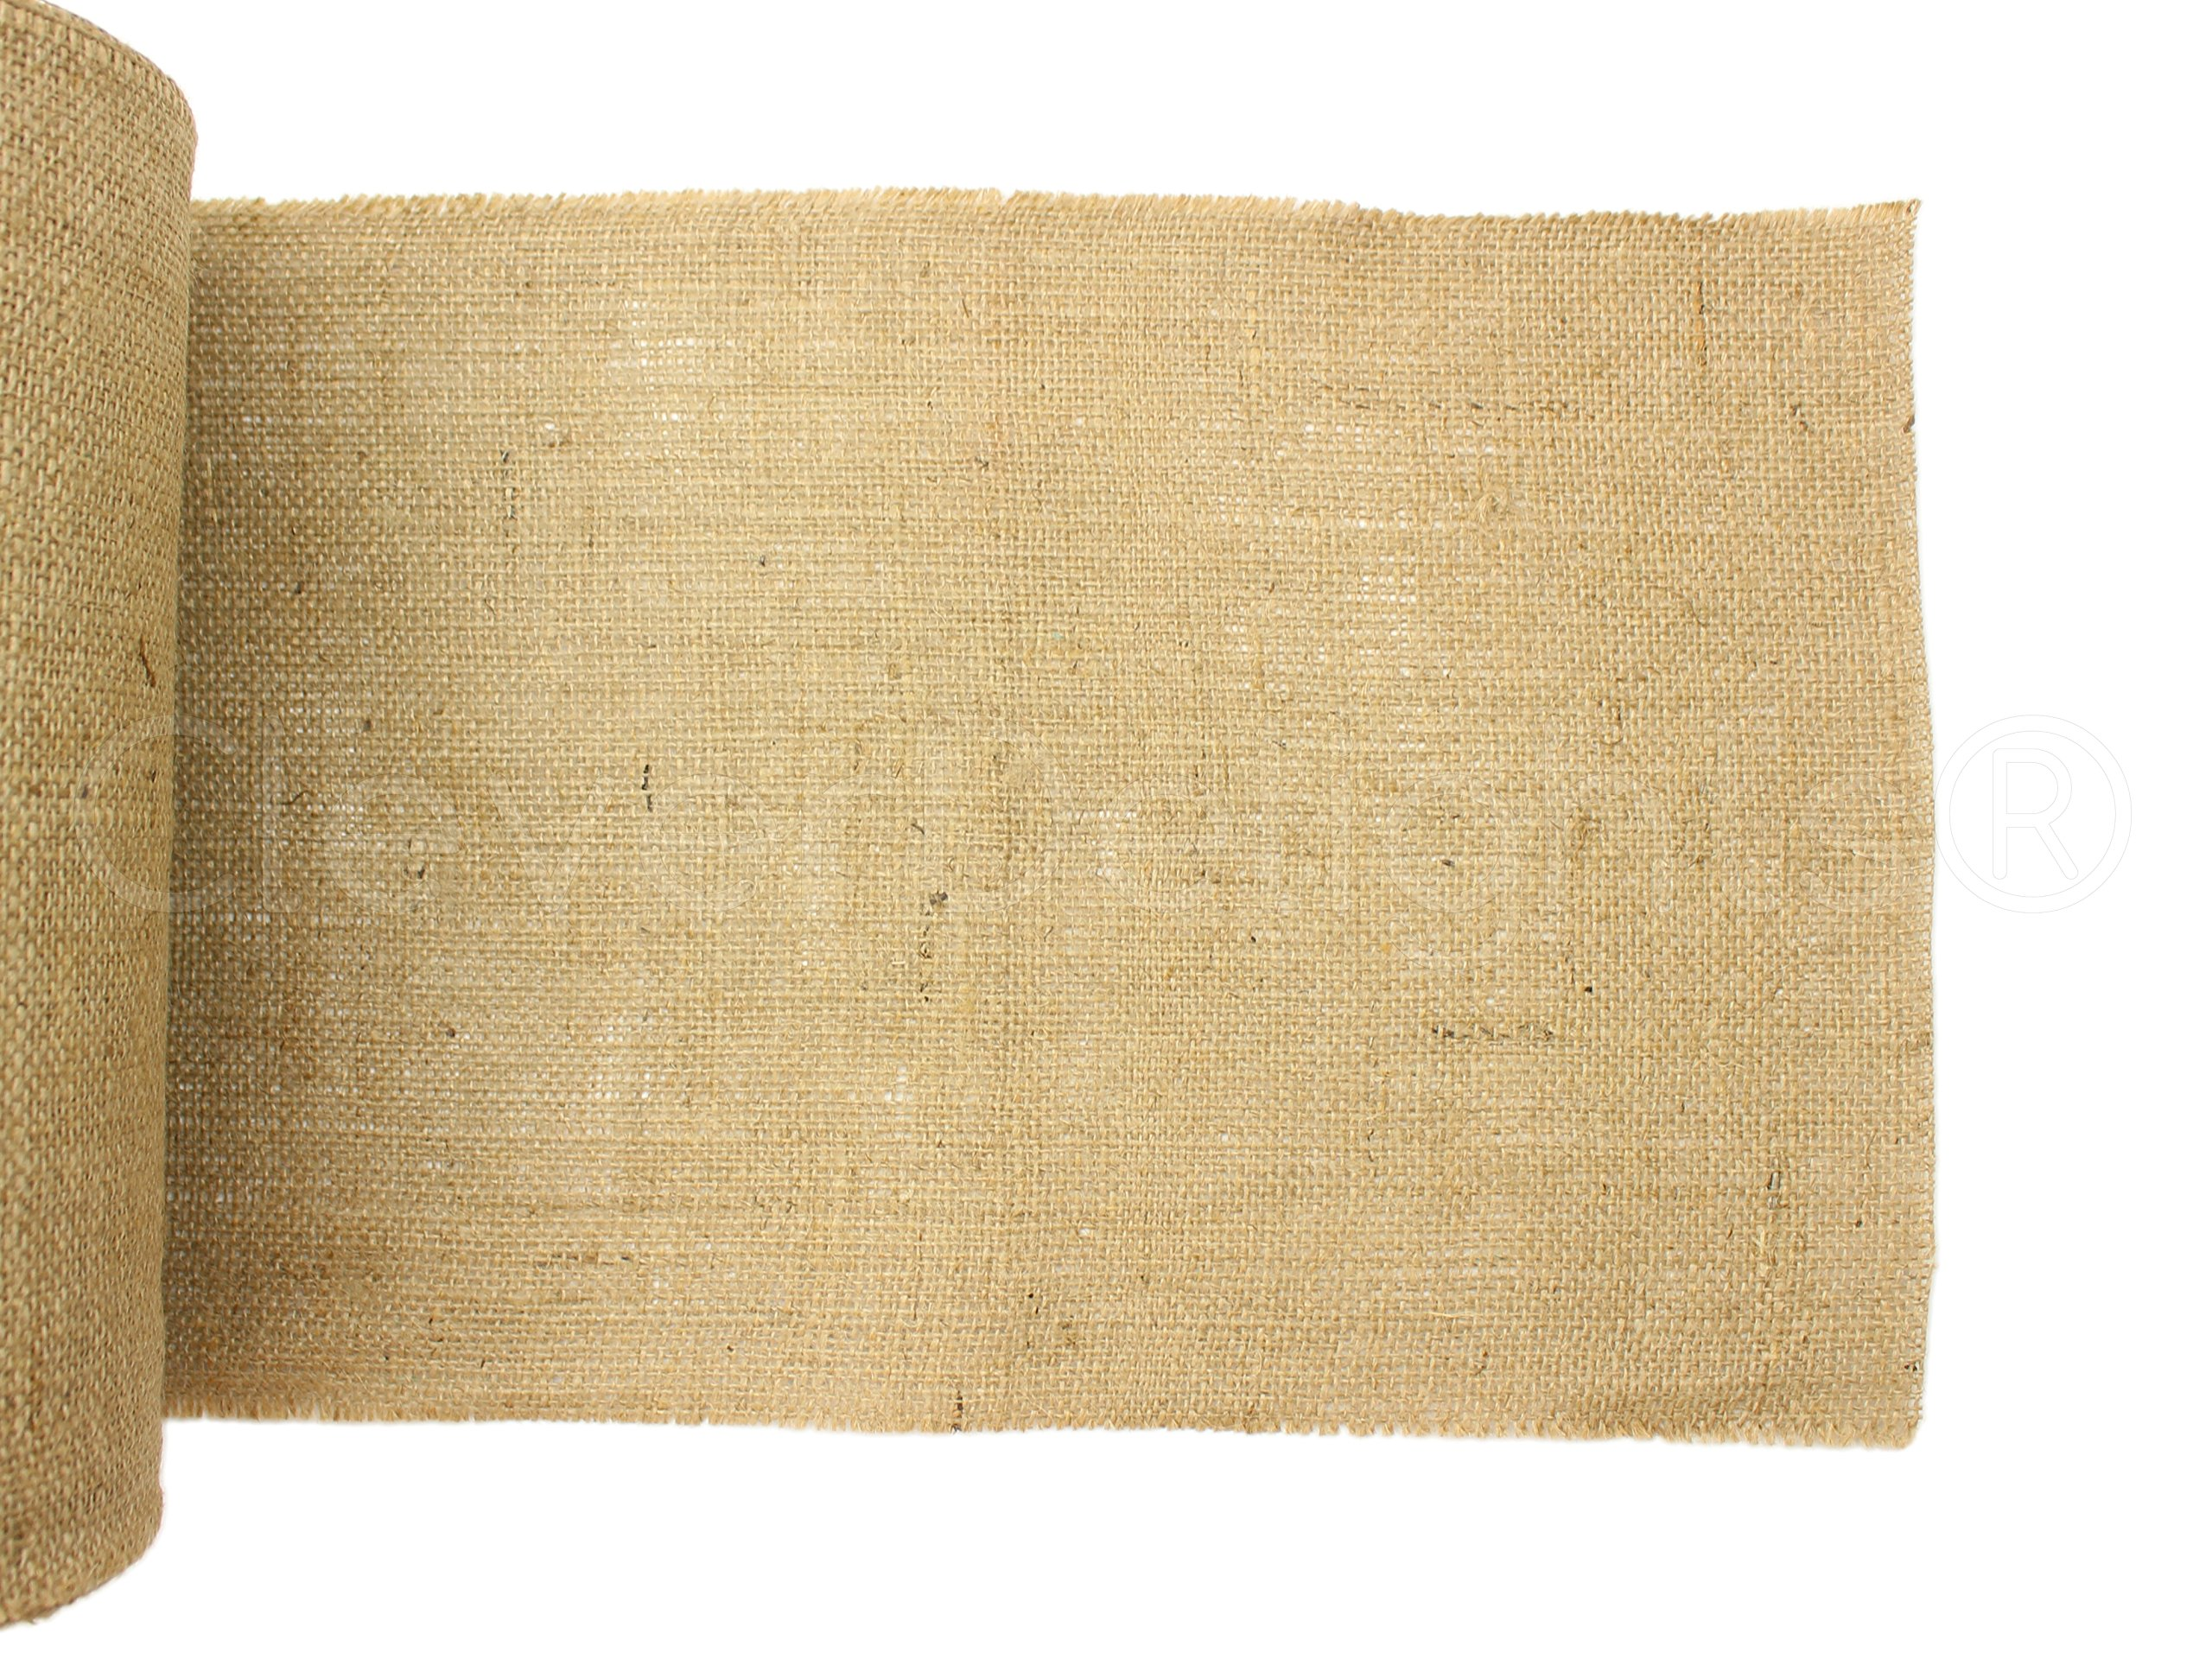 CleverDelights 12'' Natural Burlap - Industrial Grade - 50 Yard Roll - Tight-Weave Jute Burlap Fabric by CleverDelights (Image #2)